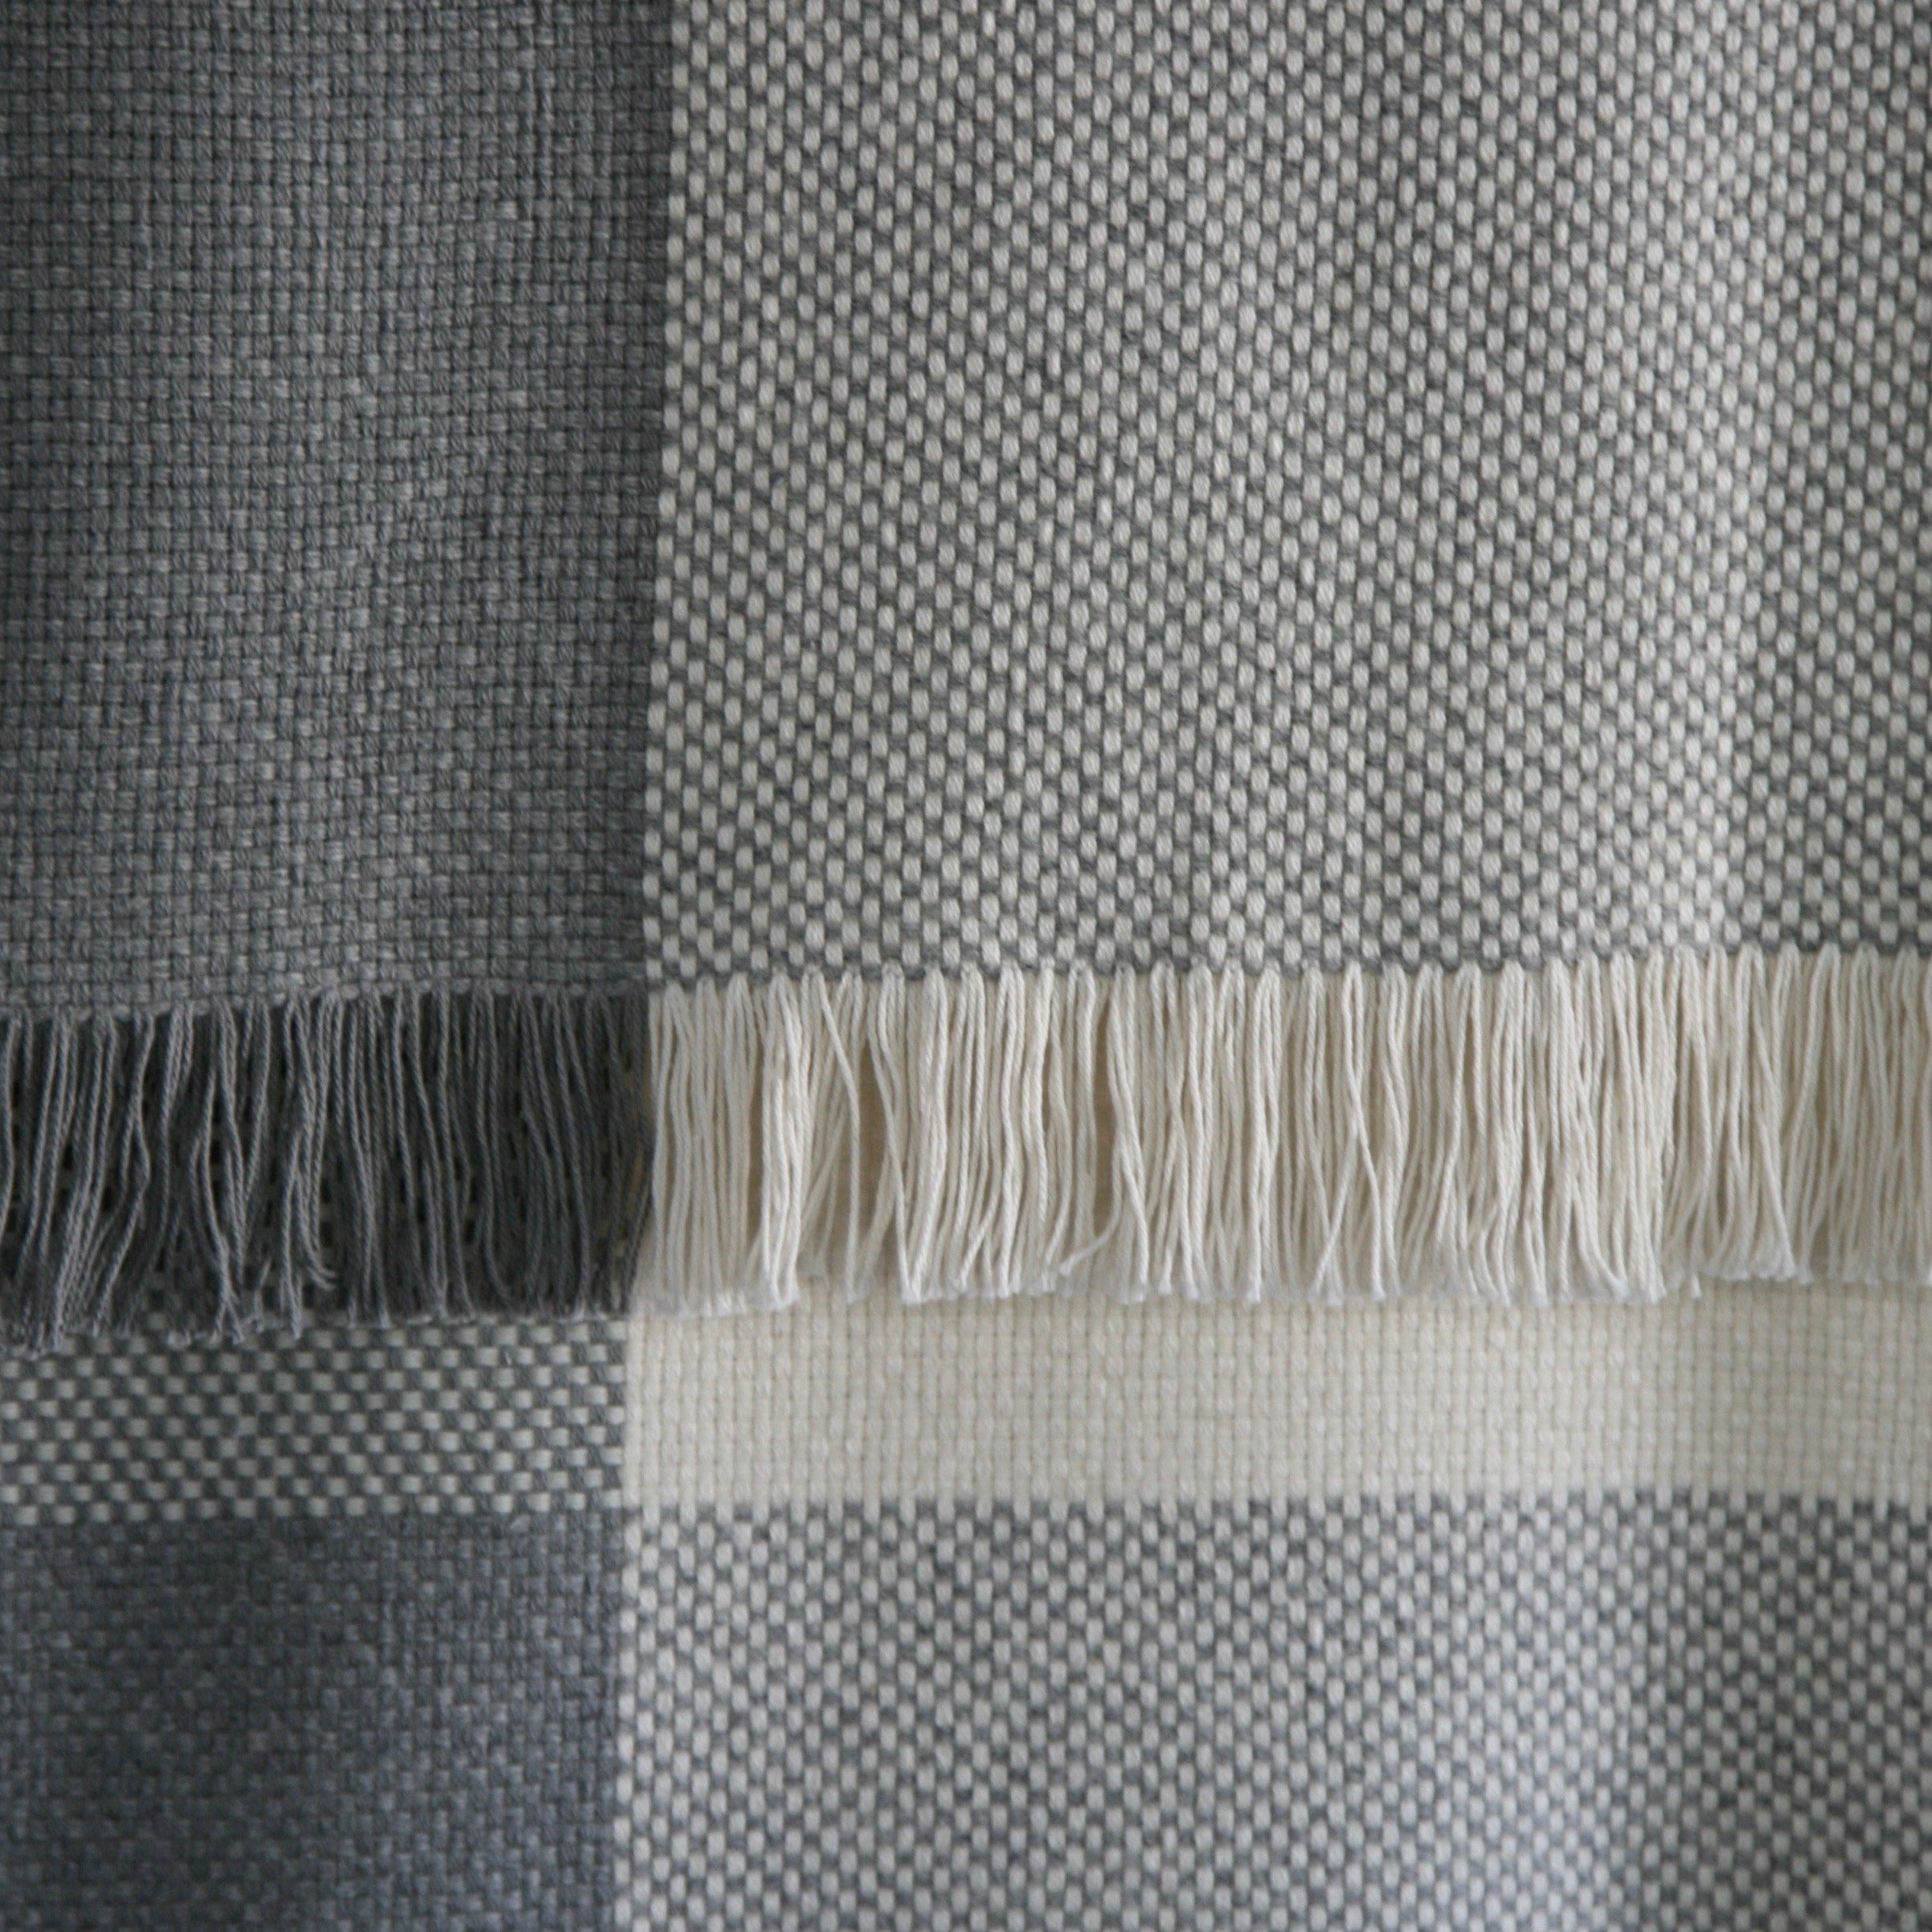 Macgee Cloth cotton wool blanket made in Canada